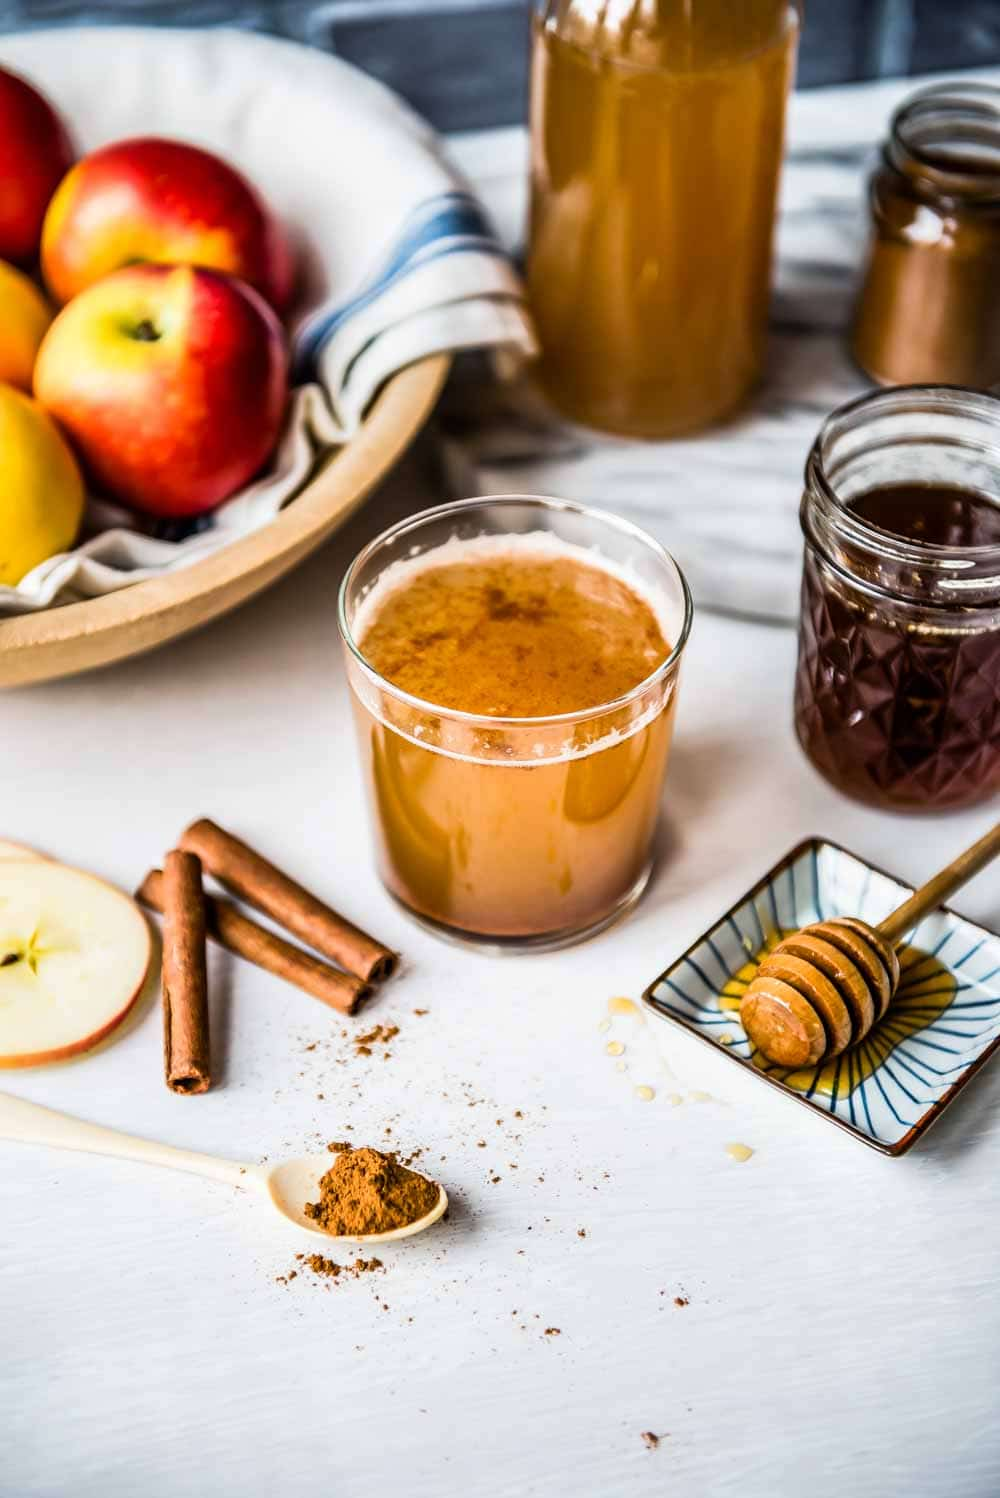 apple cider vinegar tonic is top of our weight loss drinks list. it's included in our detox drinks for weight loss list.